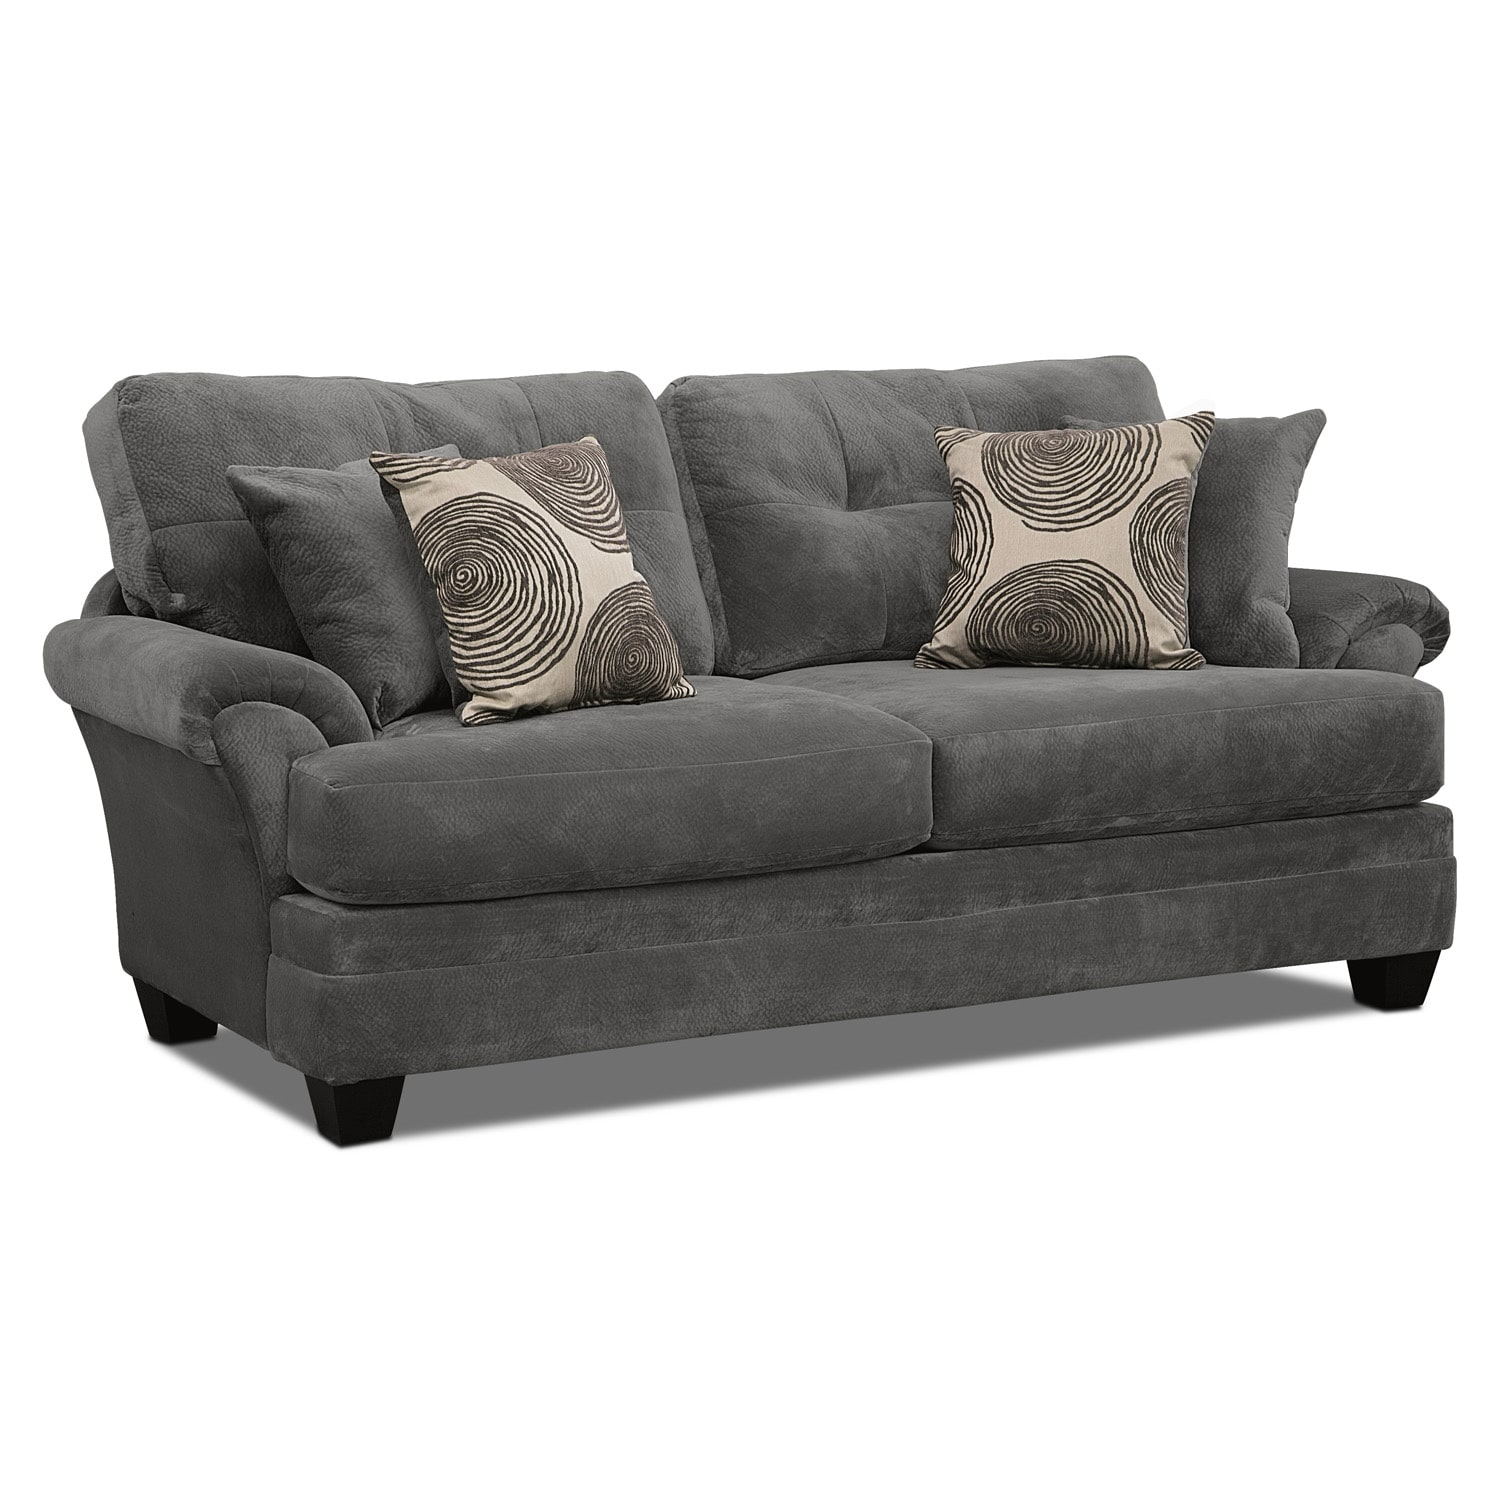 Living Room Furniture - Cordelle Sofa - Gray